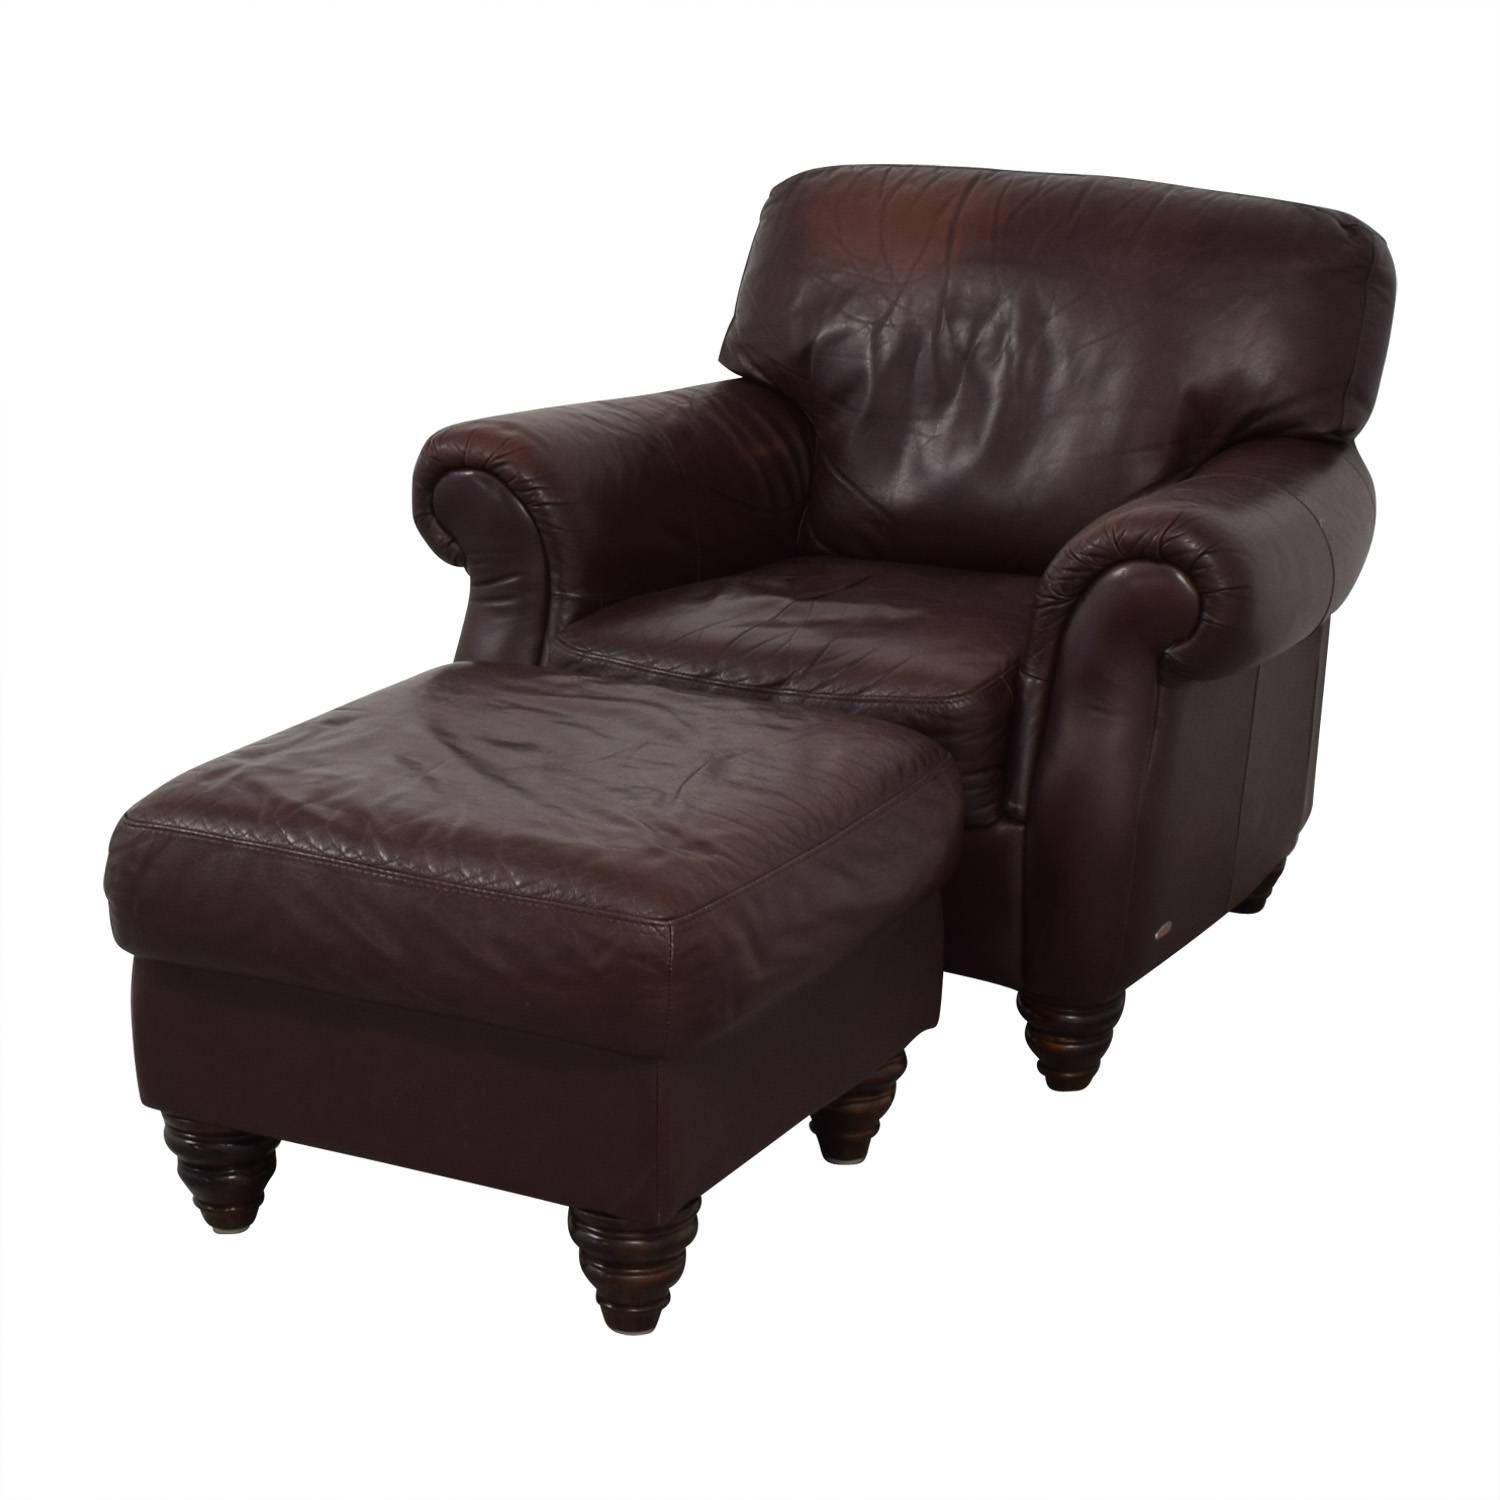 buy Fortunoff Fortunoff Brown Accent Chair and Ottoman online